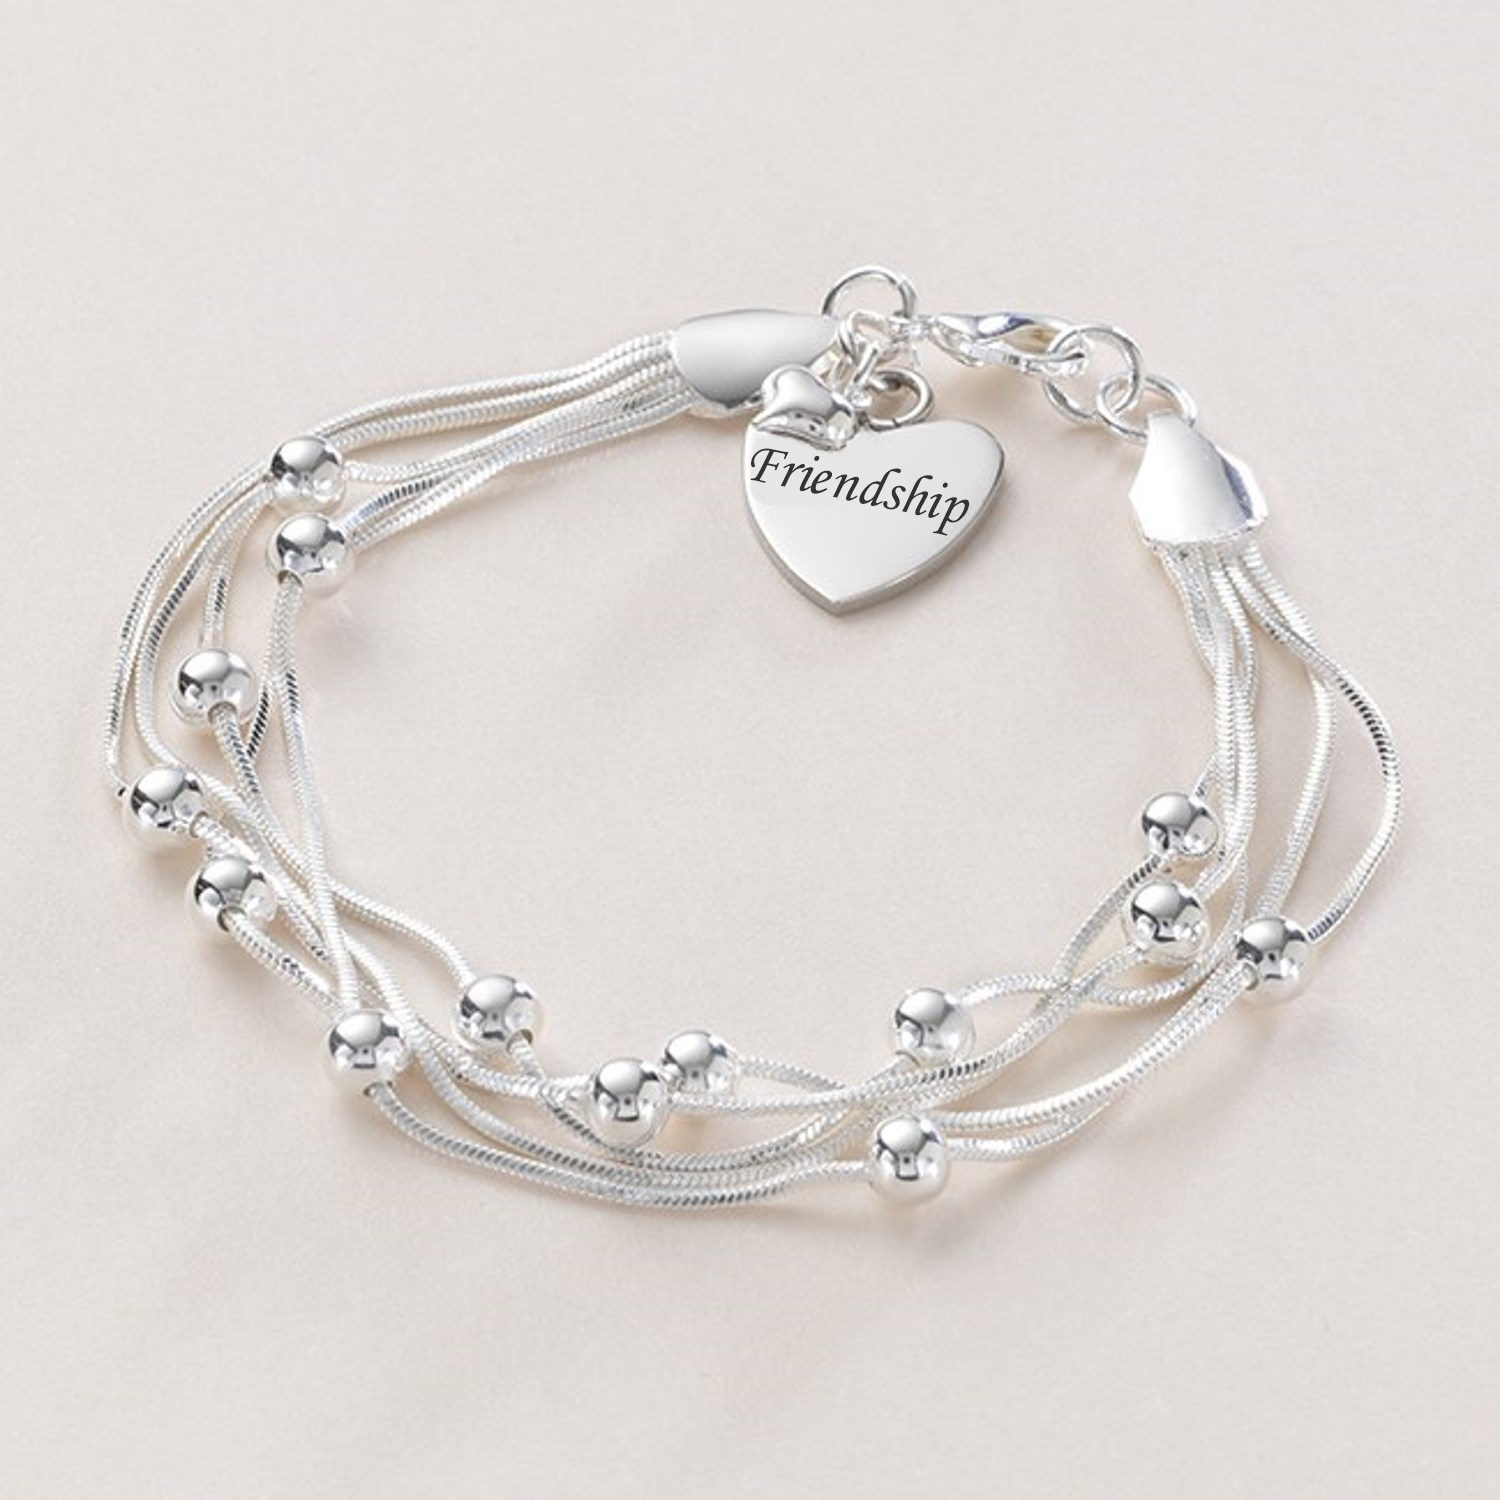 pin bracelet klutz love i friendship cobweb bands